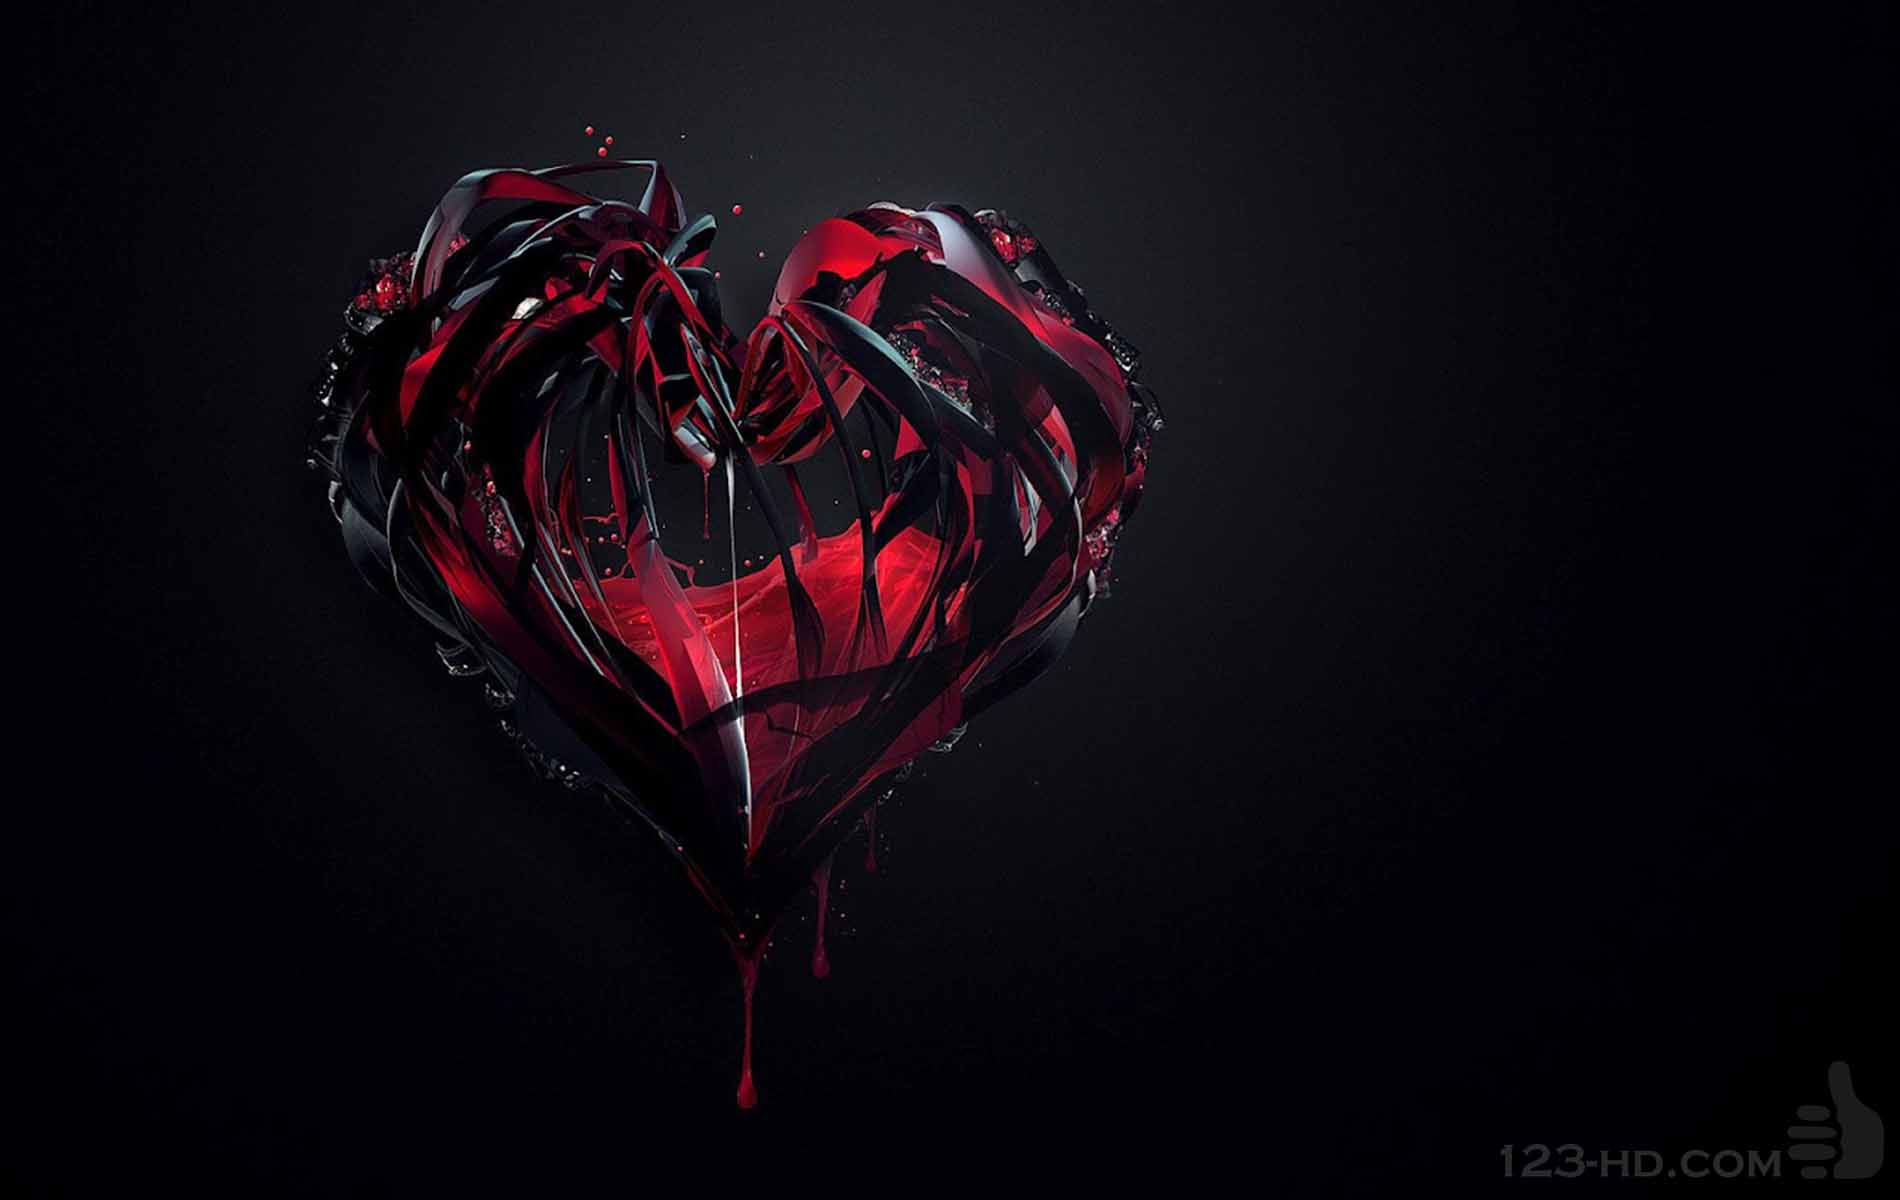 Black & Red Heart |